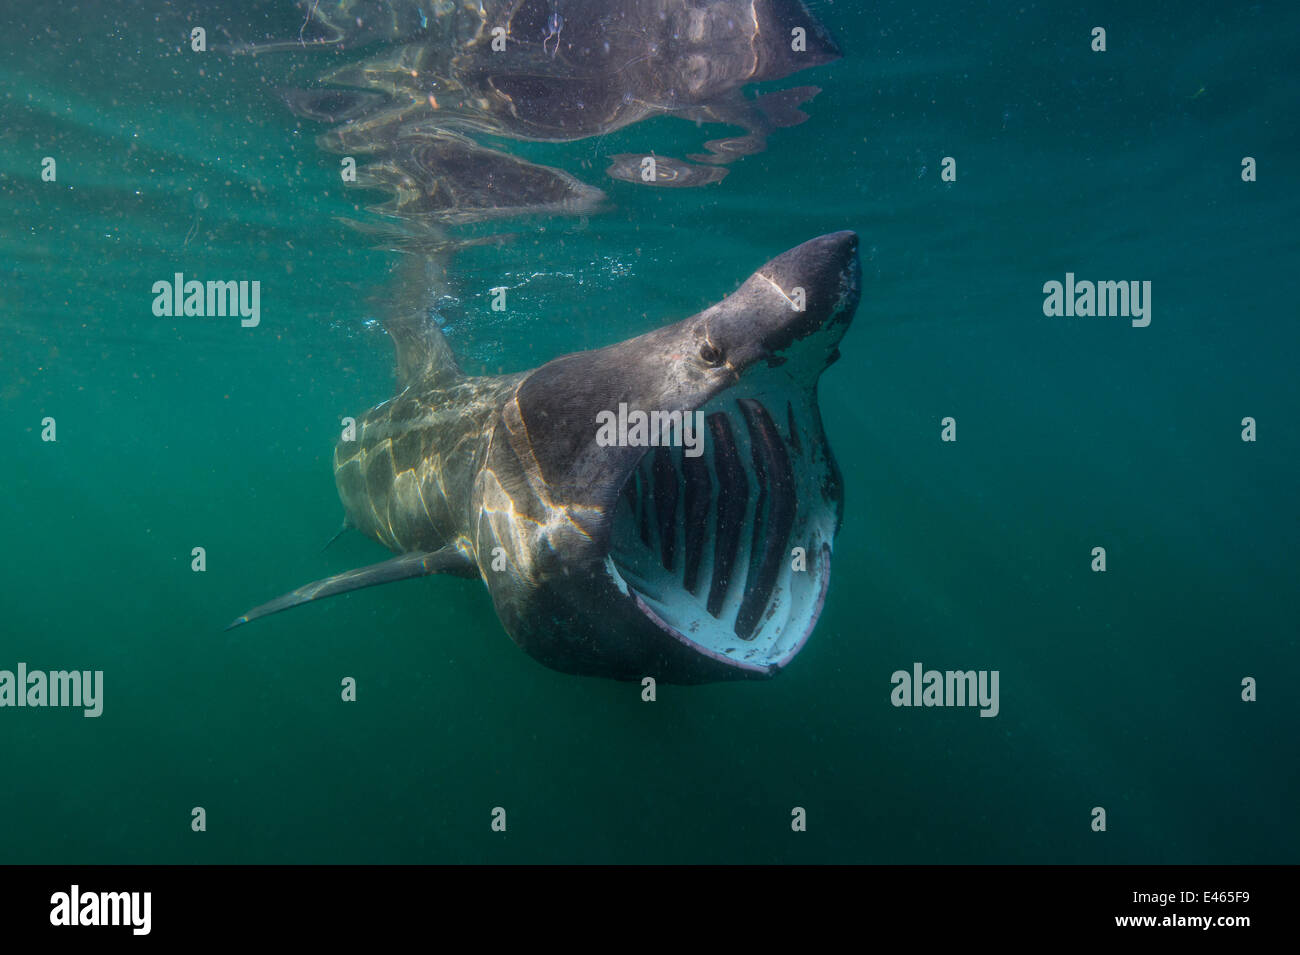 Basking shark (Cetorhinus maximus) feeding at the surface on plankton, Cairns Of Coll, Isle of Coll, Inner Hebrides, - Stock Image